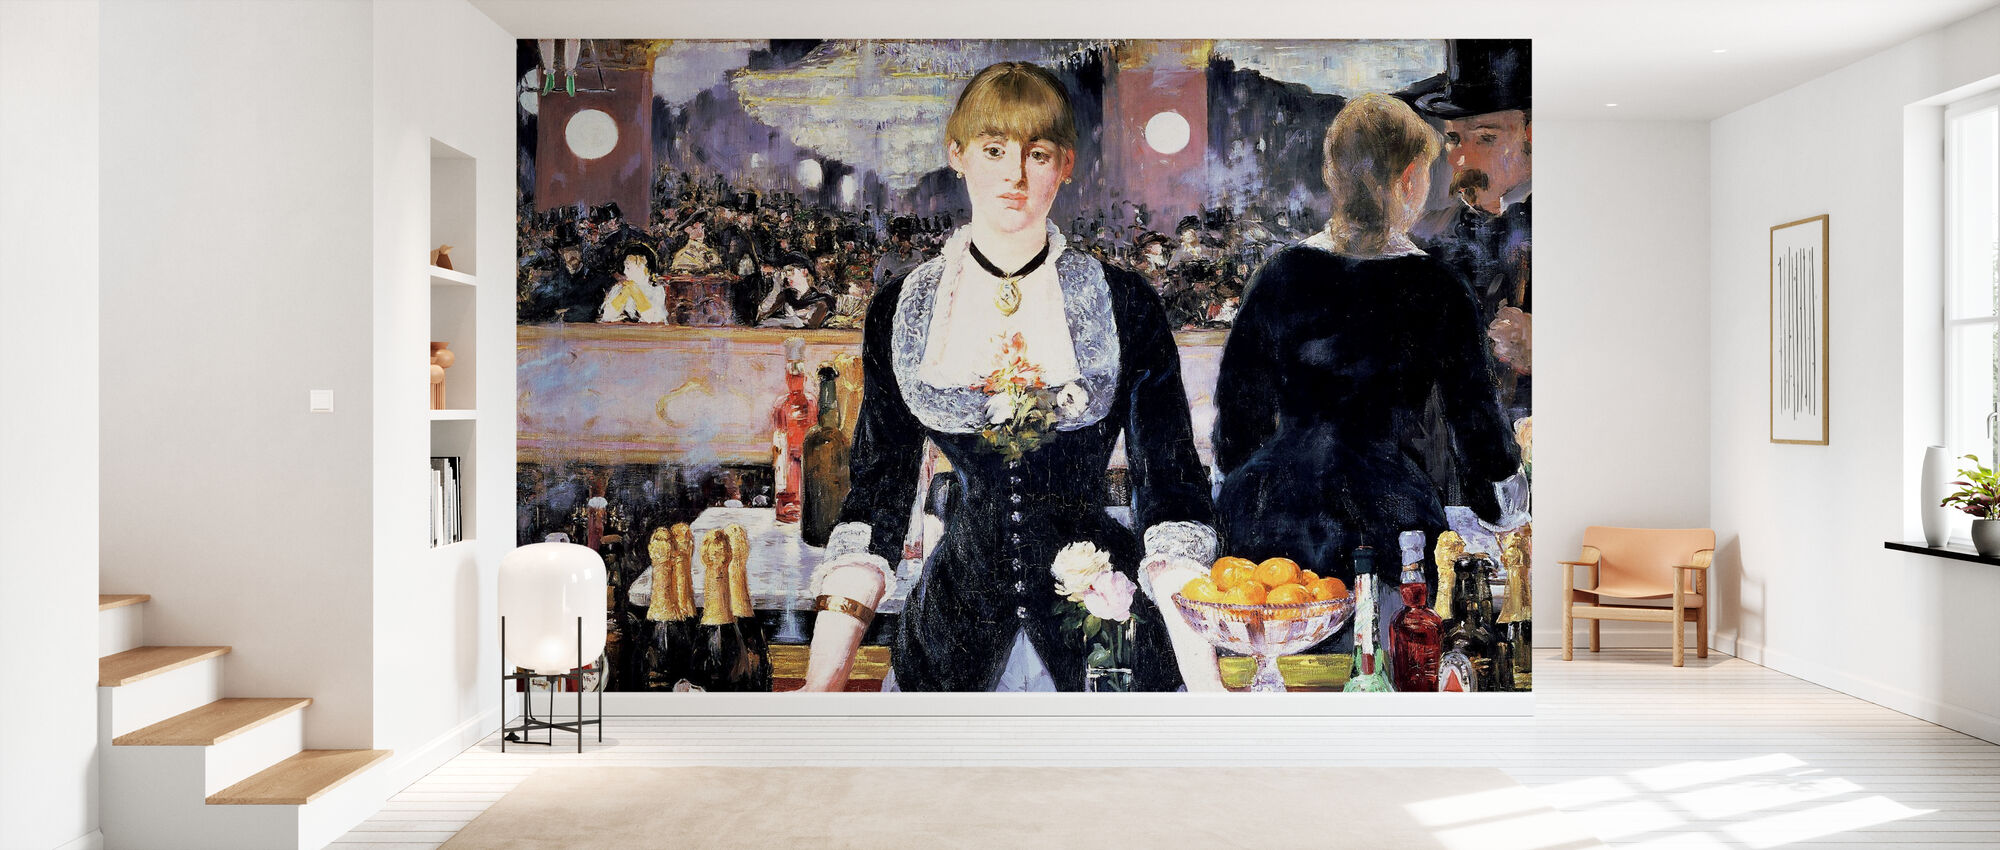 Bar at Folies-Bergere, Edouard Manet - Wallpaper - Hallway